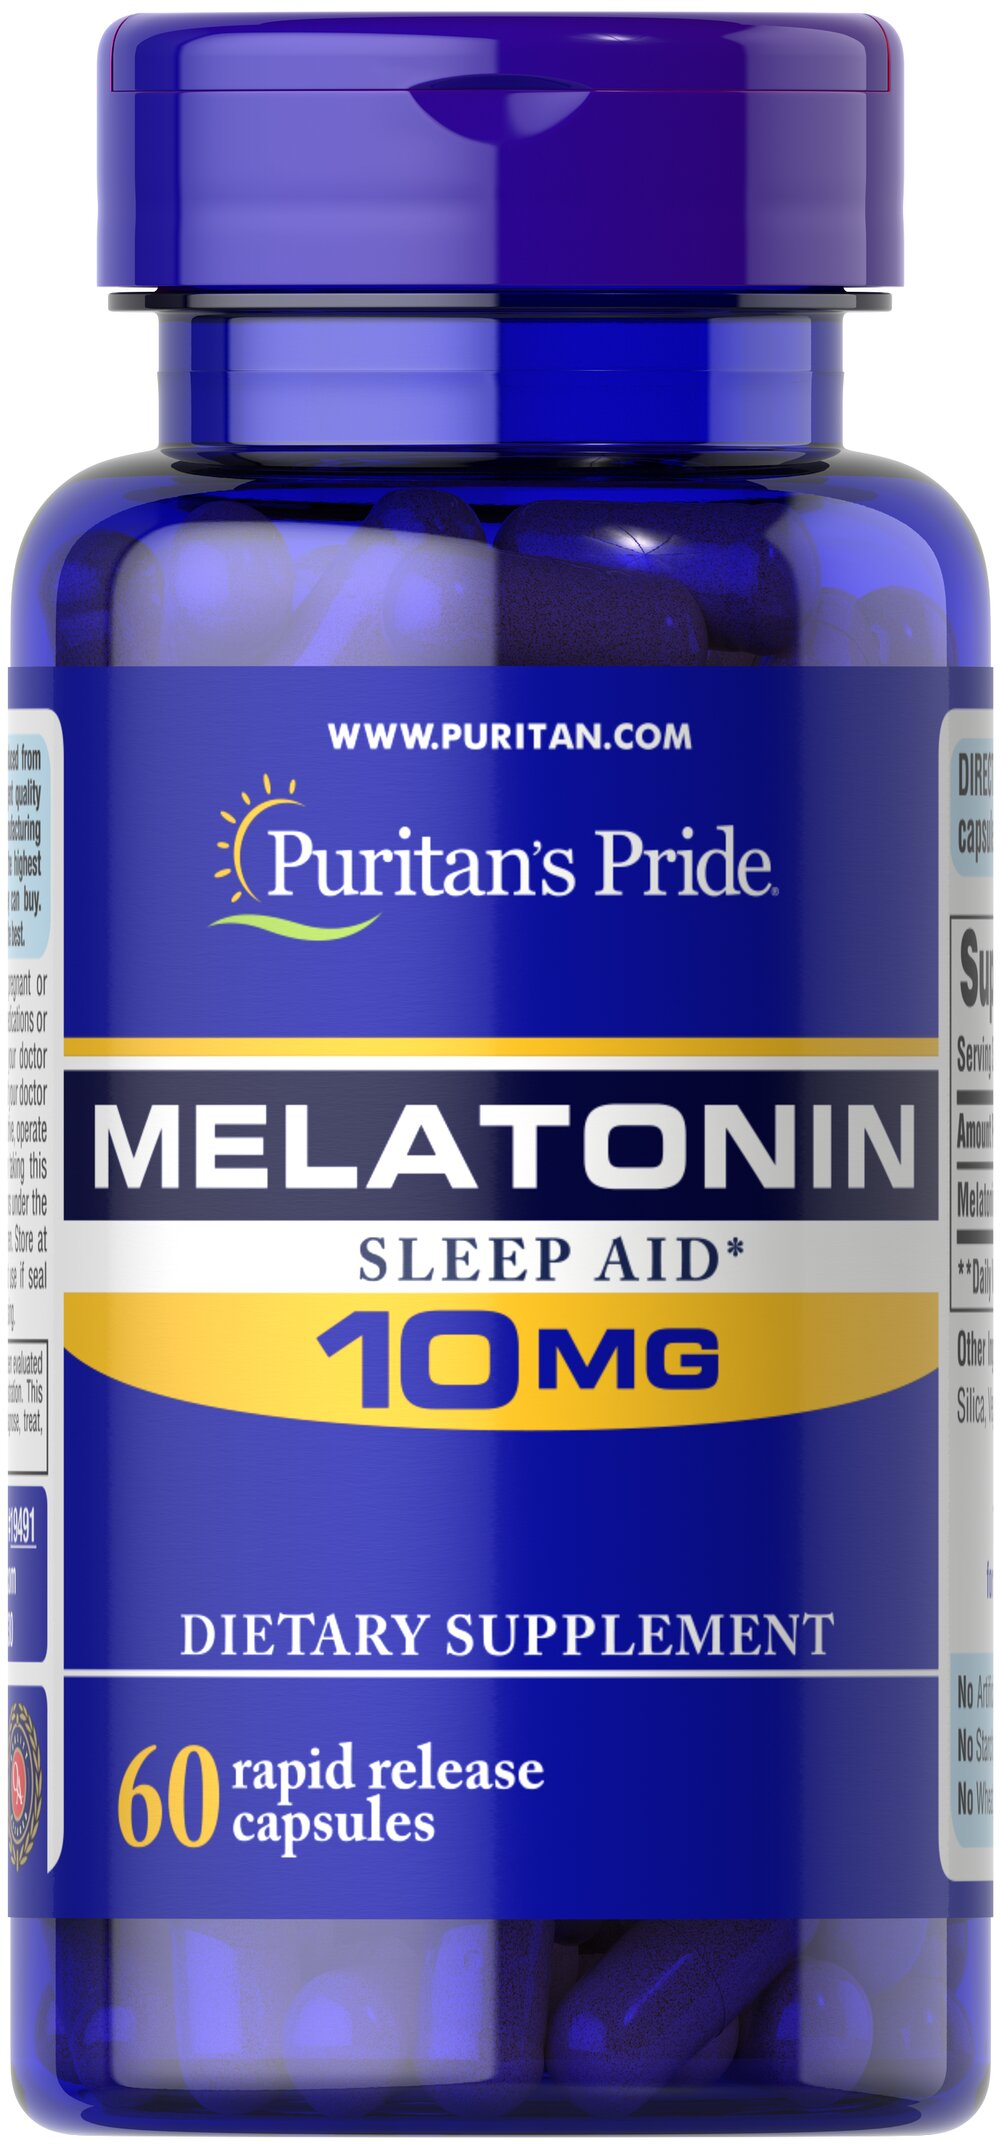 Melatonin 10 mg <p>Sometimes it's hard to unwind after a long day. That's when it's time for Melatonin, a hormone naturally produced in the body that is closely involved in the natural sleep cycle.** It's a terrific choice if you experience occasional sleeplessness or jet lag, or if you want to improve your quality of rest.**  Melatonin helps you fall asleep quickly and stay asleep longer**<br /></p> 60 Capsules 10 mg $10.99